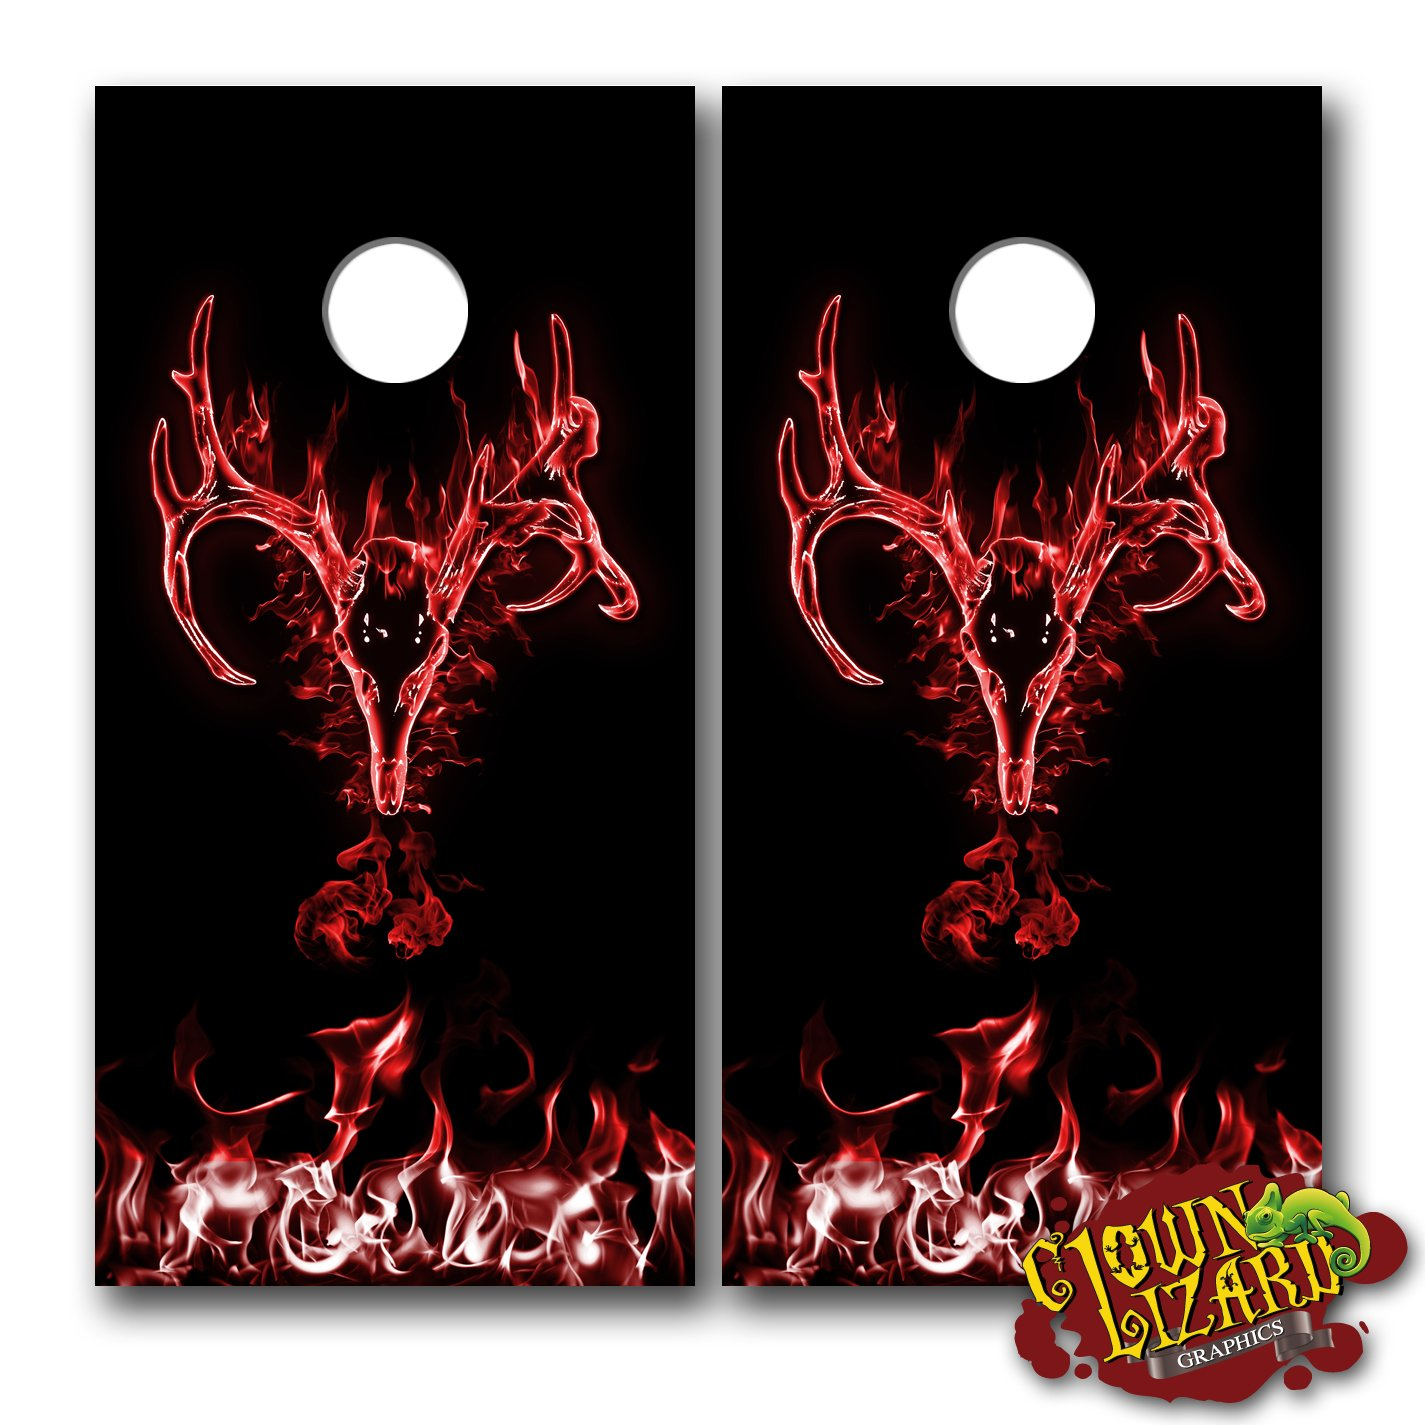 Cl0049 flaming buck skull red cornhole laminated decal wrap set decals board boards vinyl sticker stickers bean bag game wraps vinyl graphic image corn hole